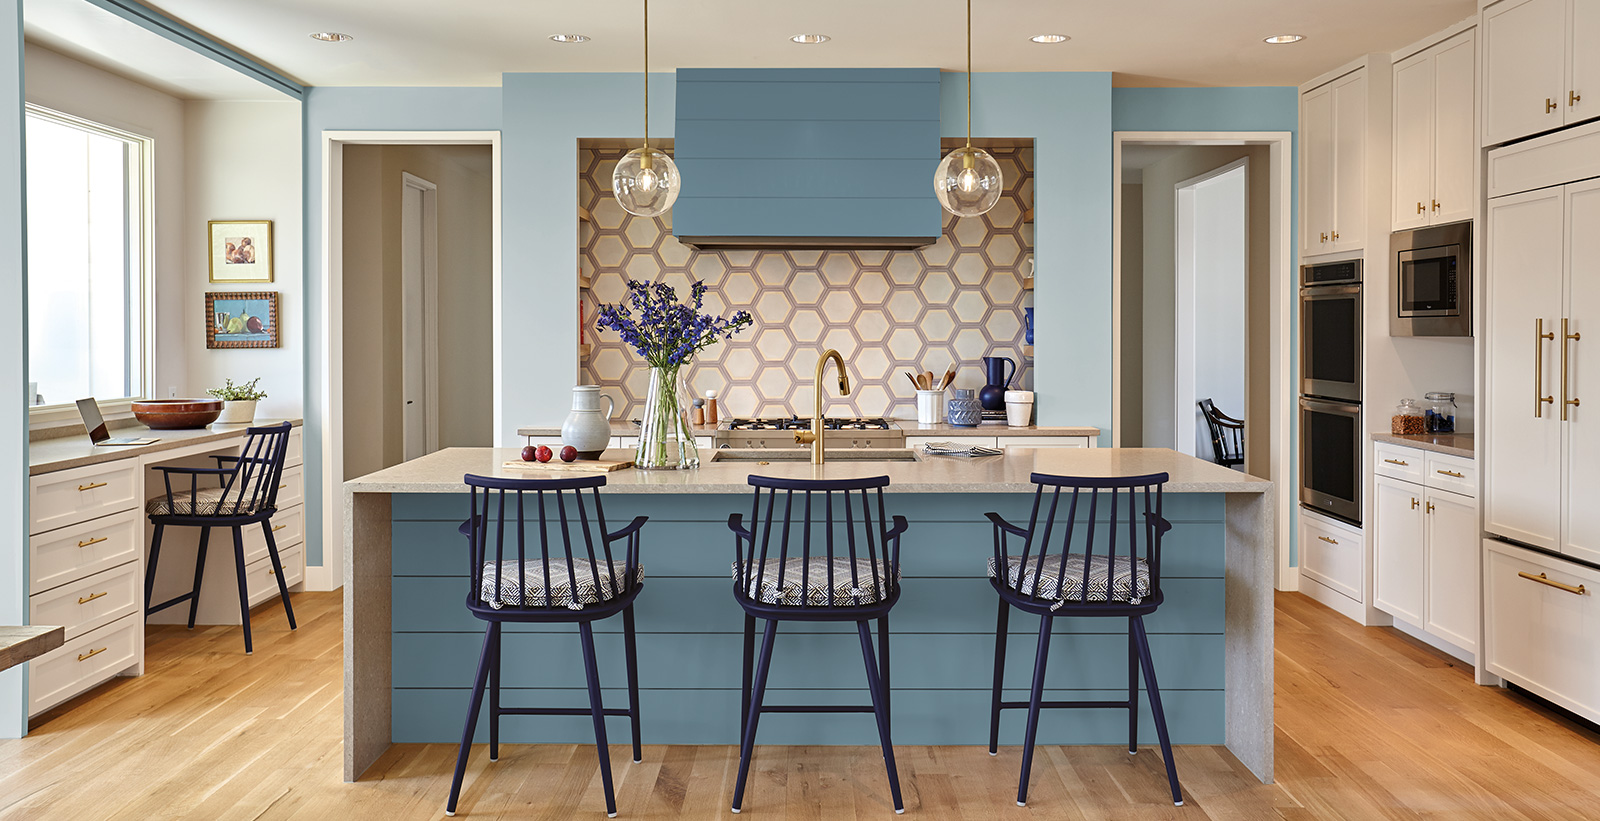 Relaxed kitchen with light blue on accent wall, white on ceiling and cabinets and honeycomb backsplash